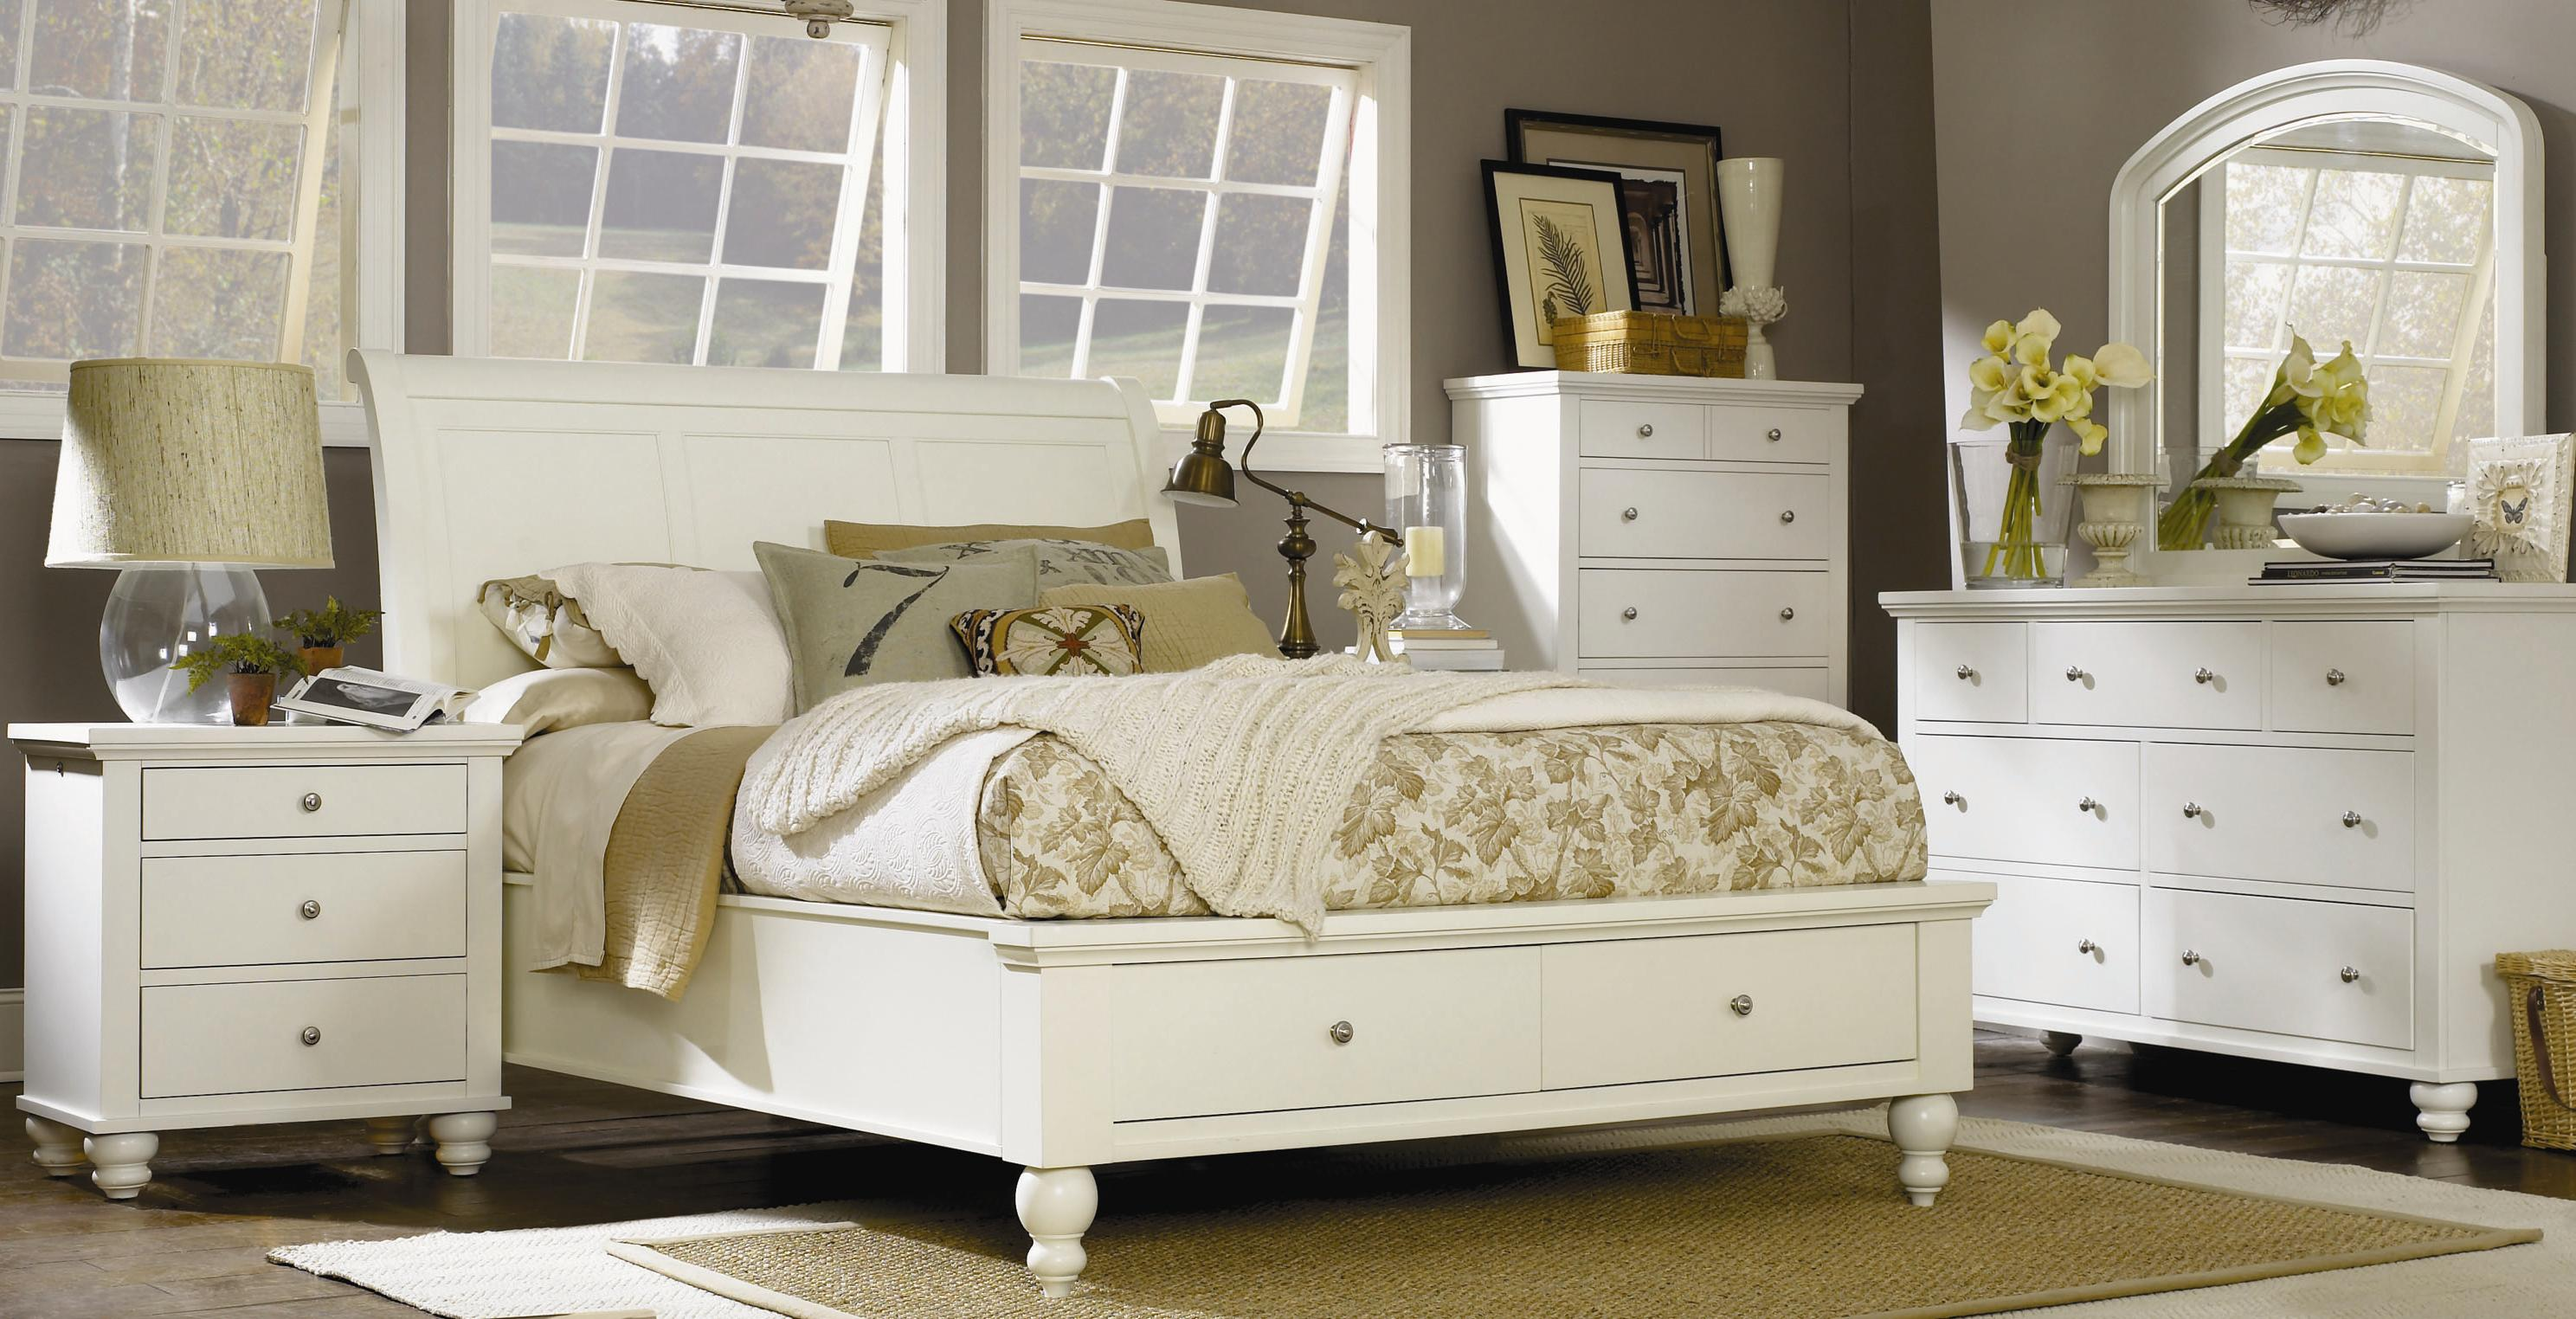 Cambridge Queen Bedroom Group by Aspenhome at Walker's Furniture